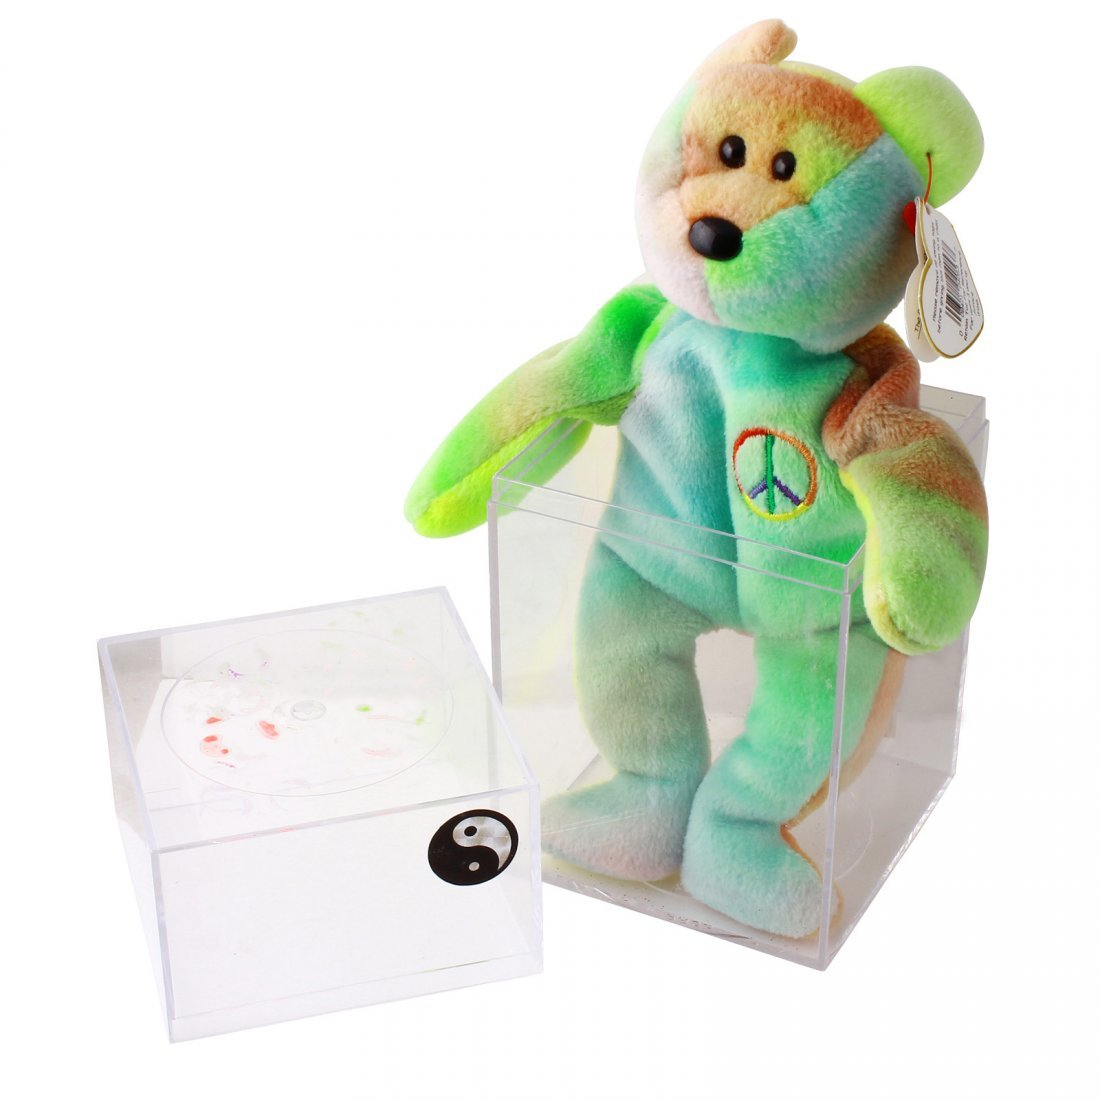 Discontinued TY Beanie Baby Multi-Colored PEACE BEAR: - 5